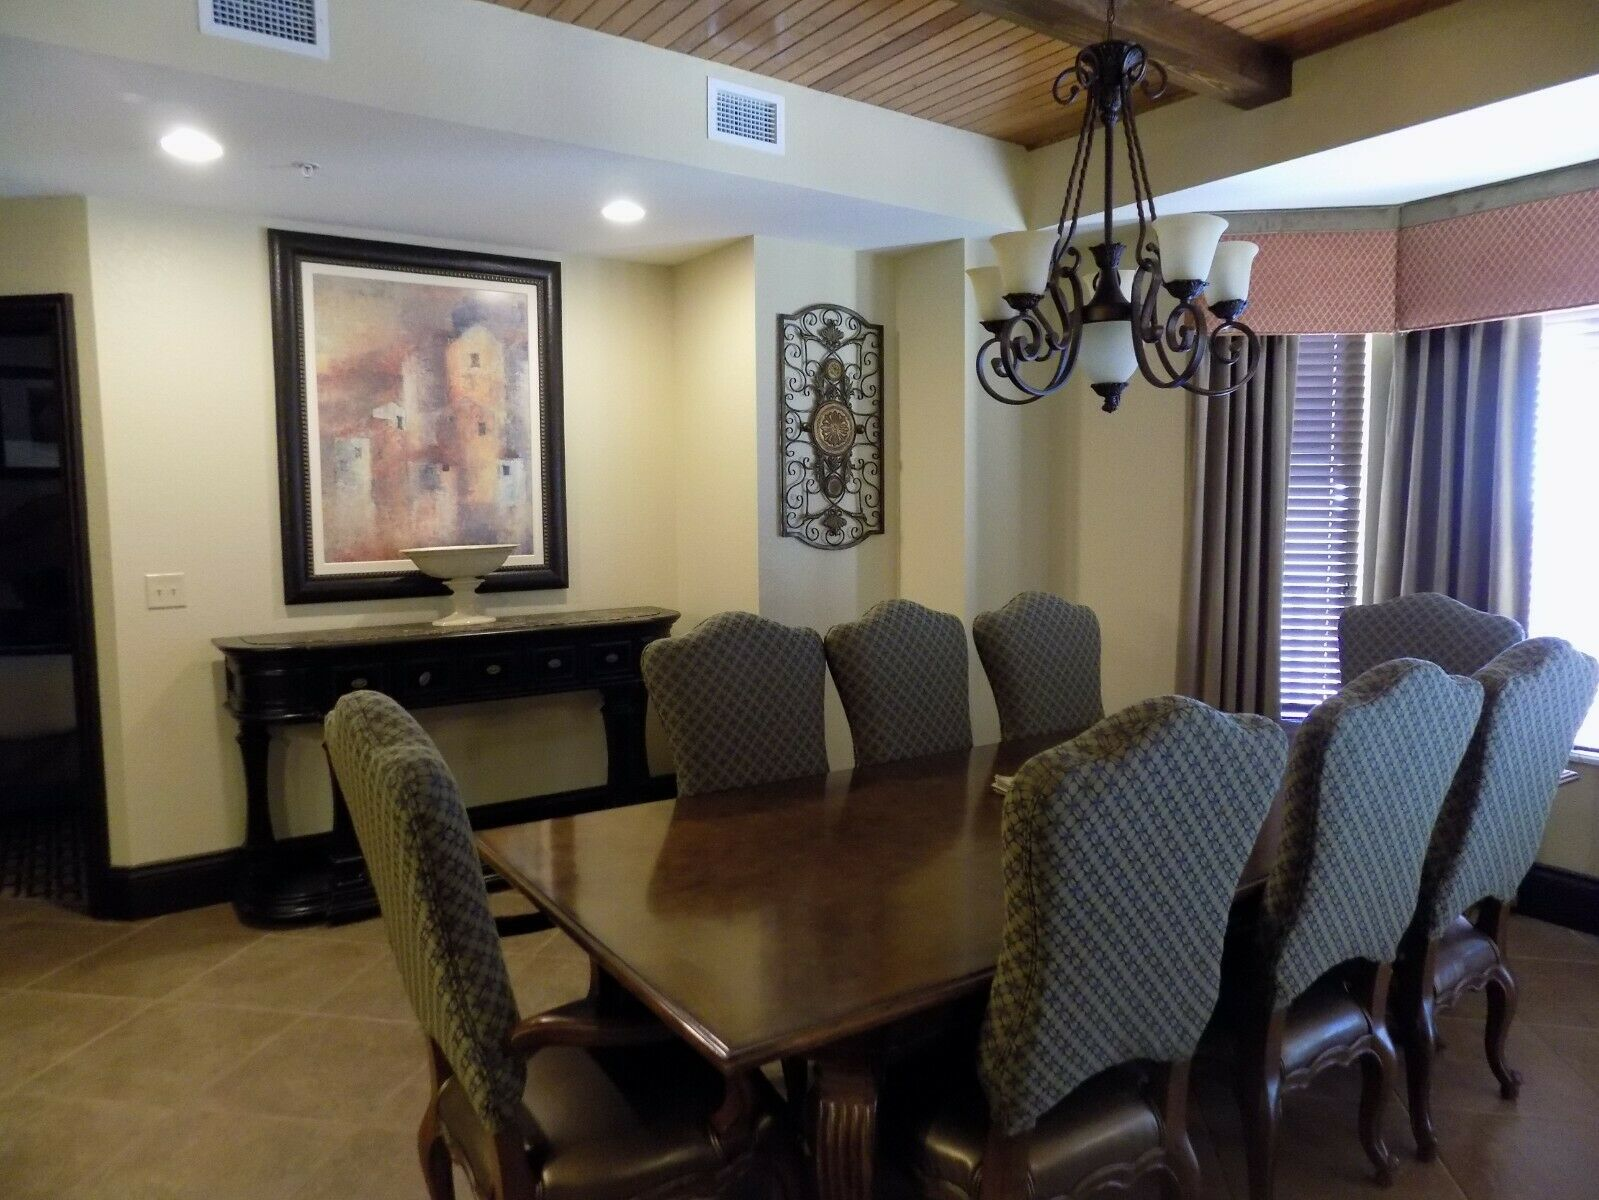 3 BEDROOM PRESIDENTIAL 4 NTS 10/31 - 11/4 BONNET CREEK ORLANDO OCTOBER 31 - $599.00